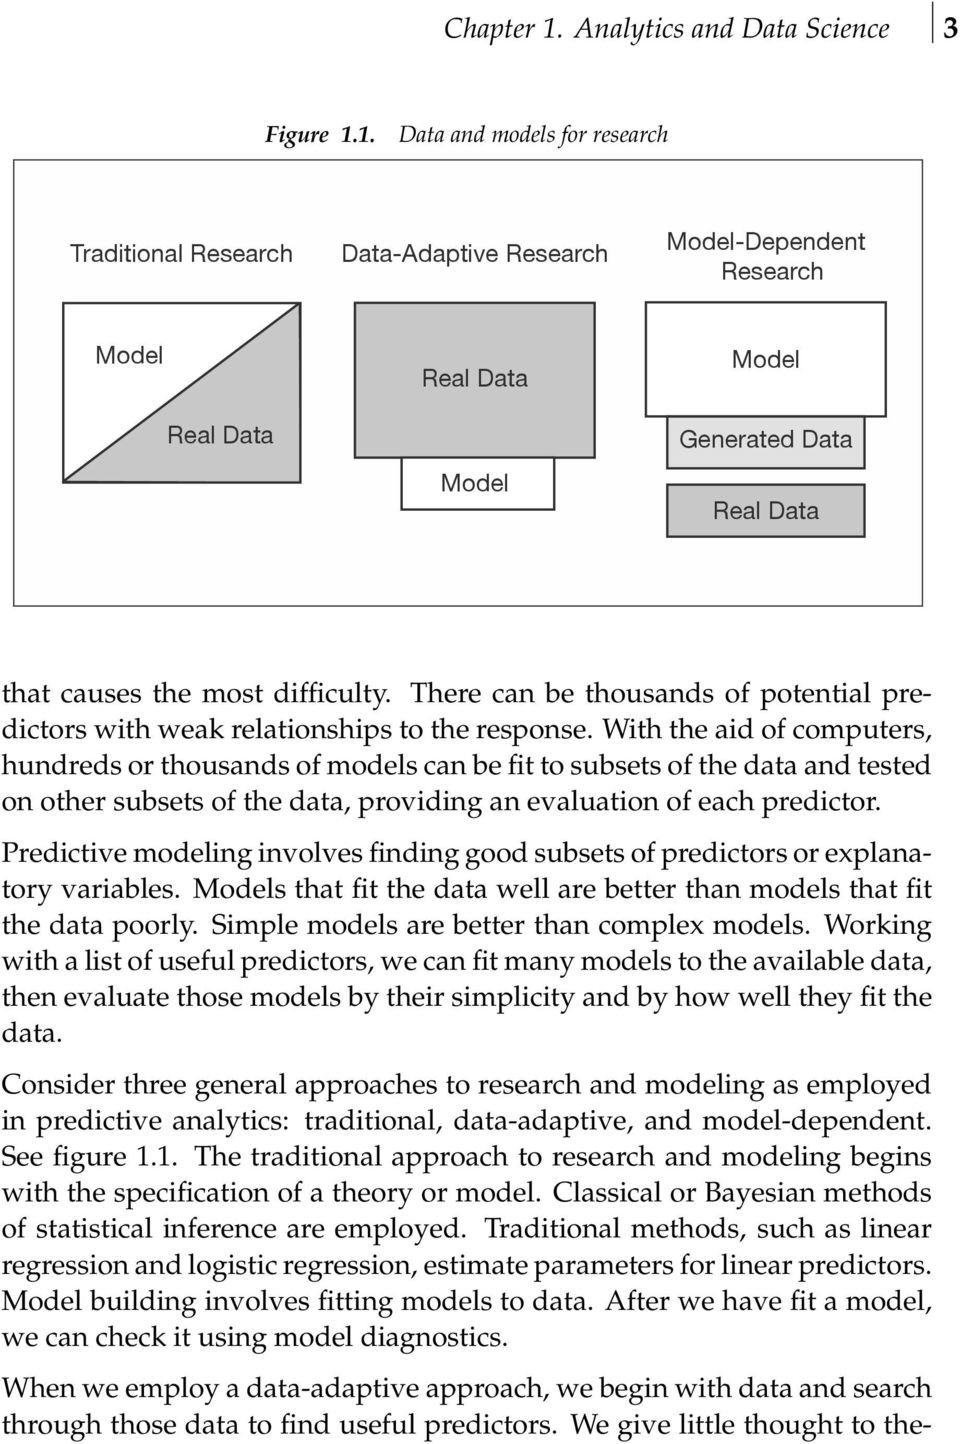 1. Data and models for research Traditional Research Data-Adaptive Research Model-Dependent Research Model Real Data Real Data Model Model Generated Data Real Data that causes the most difficulty.